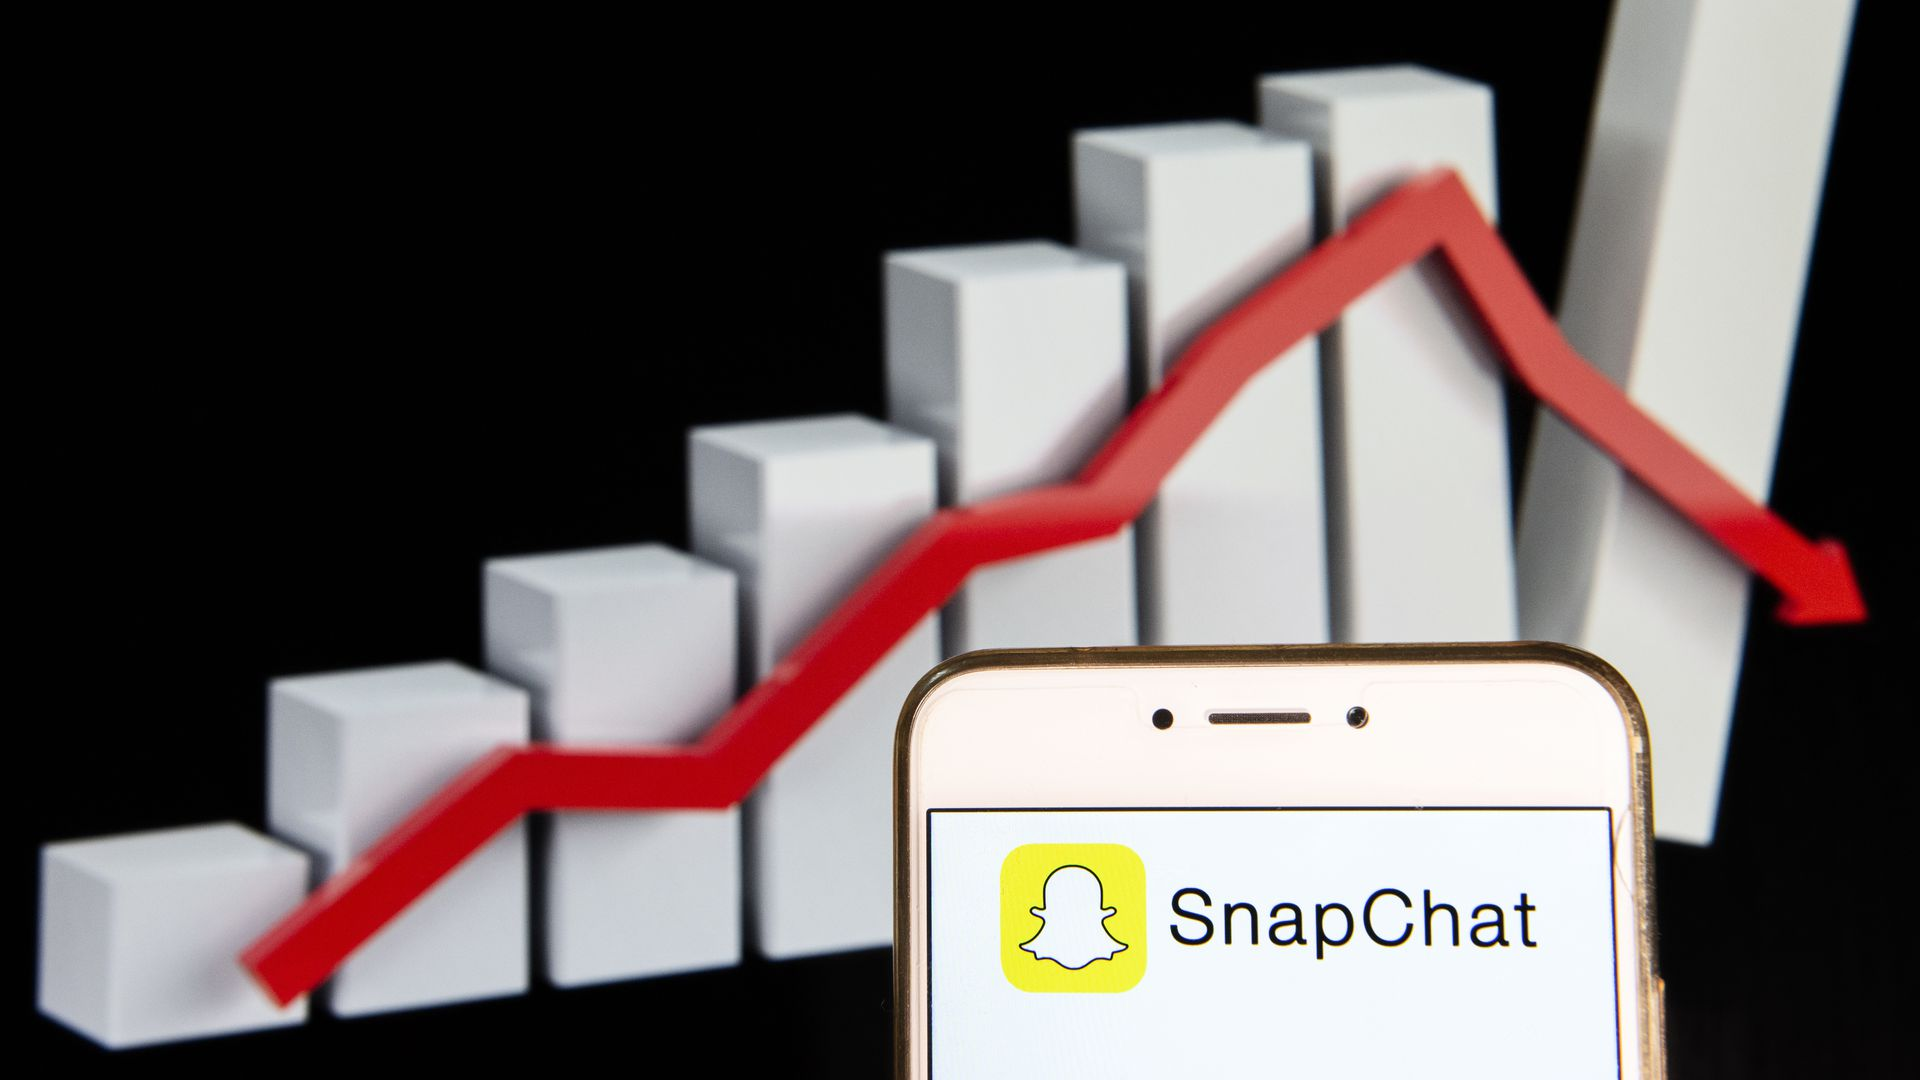 illustration of snap logo in front of declining line graph